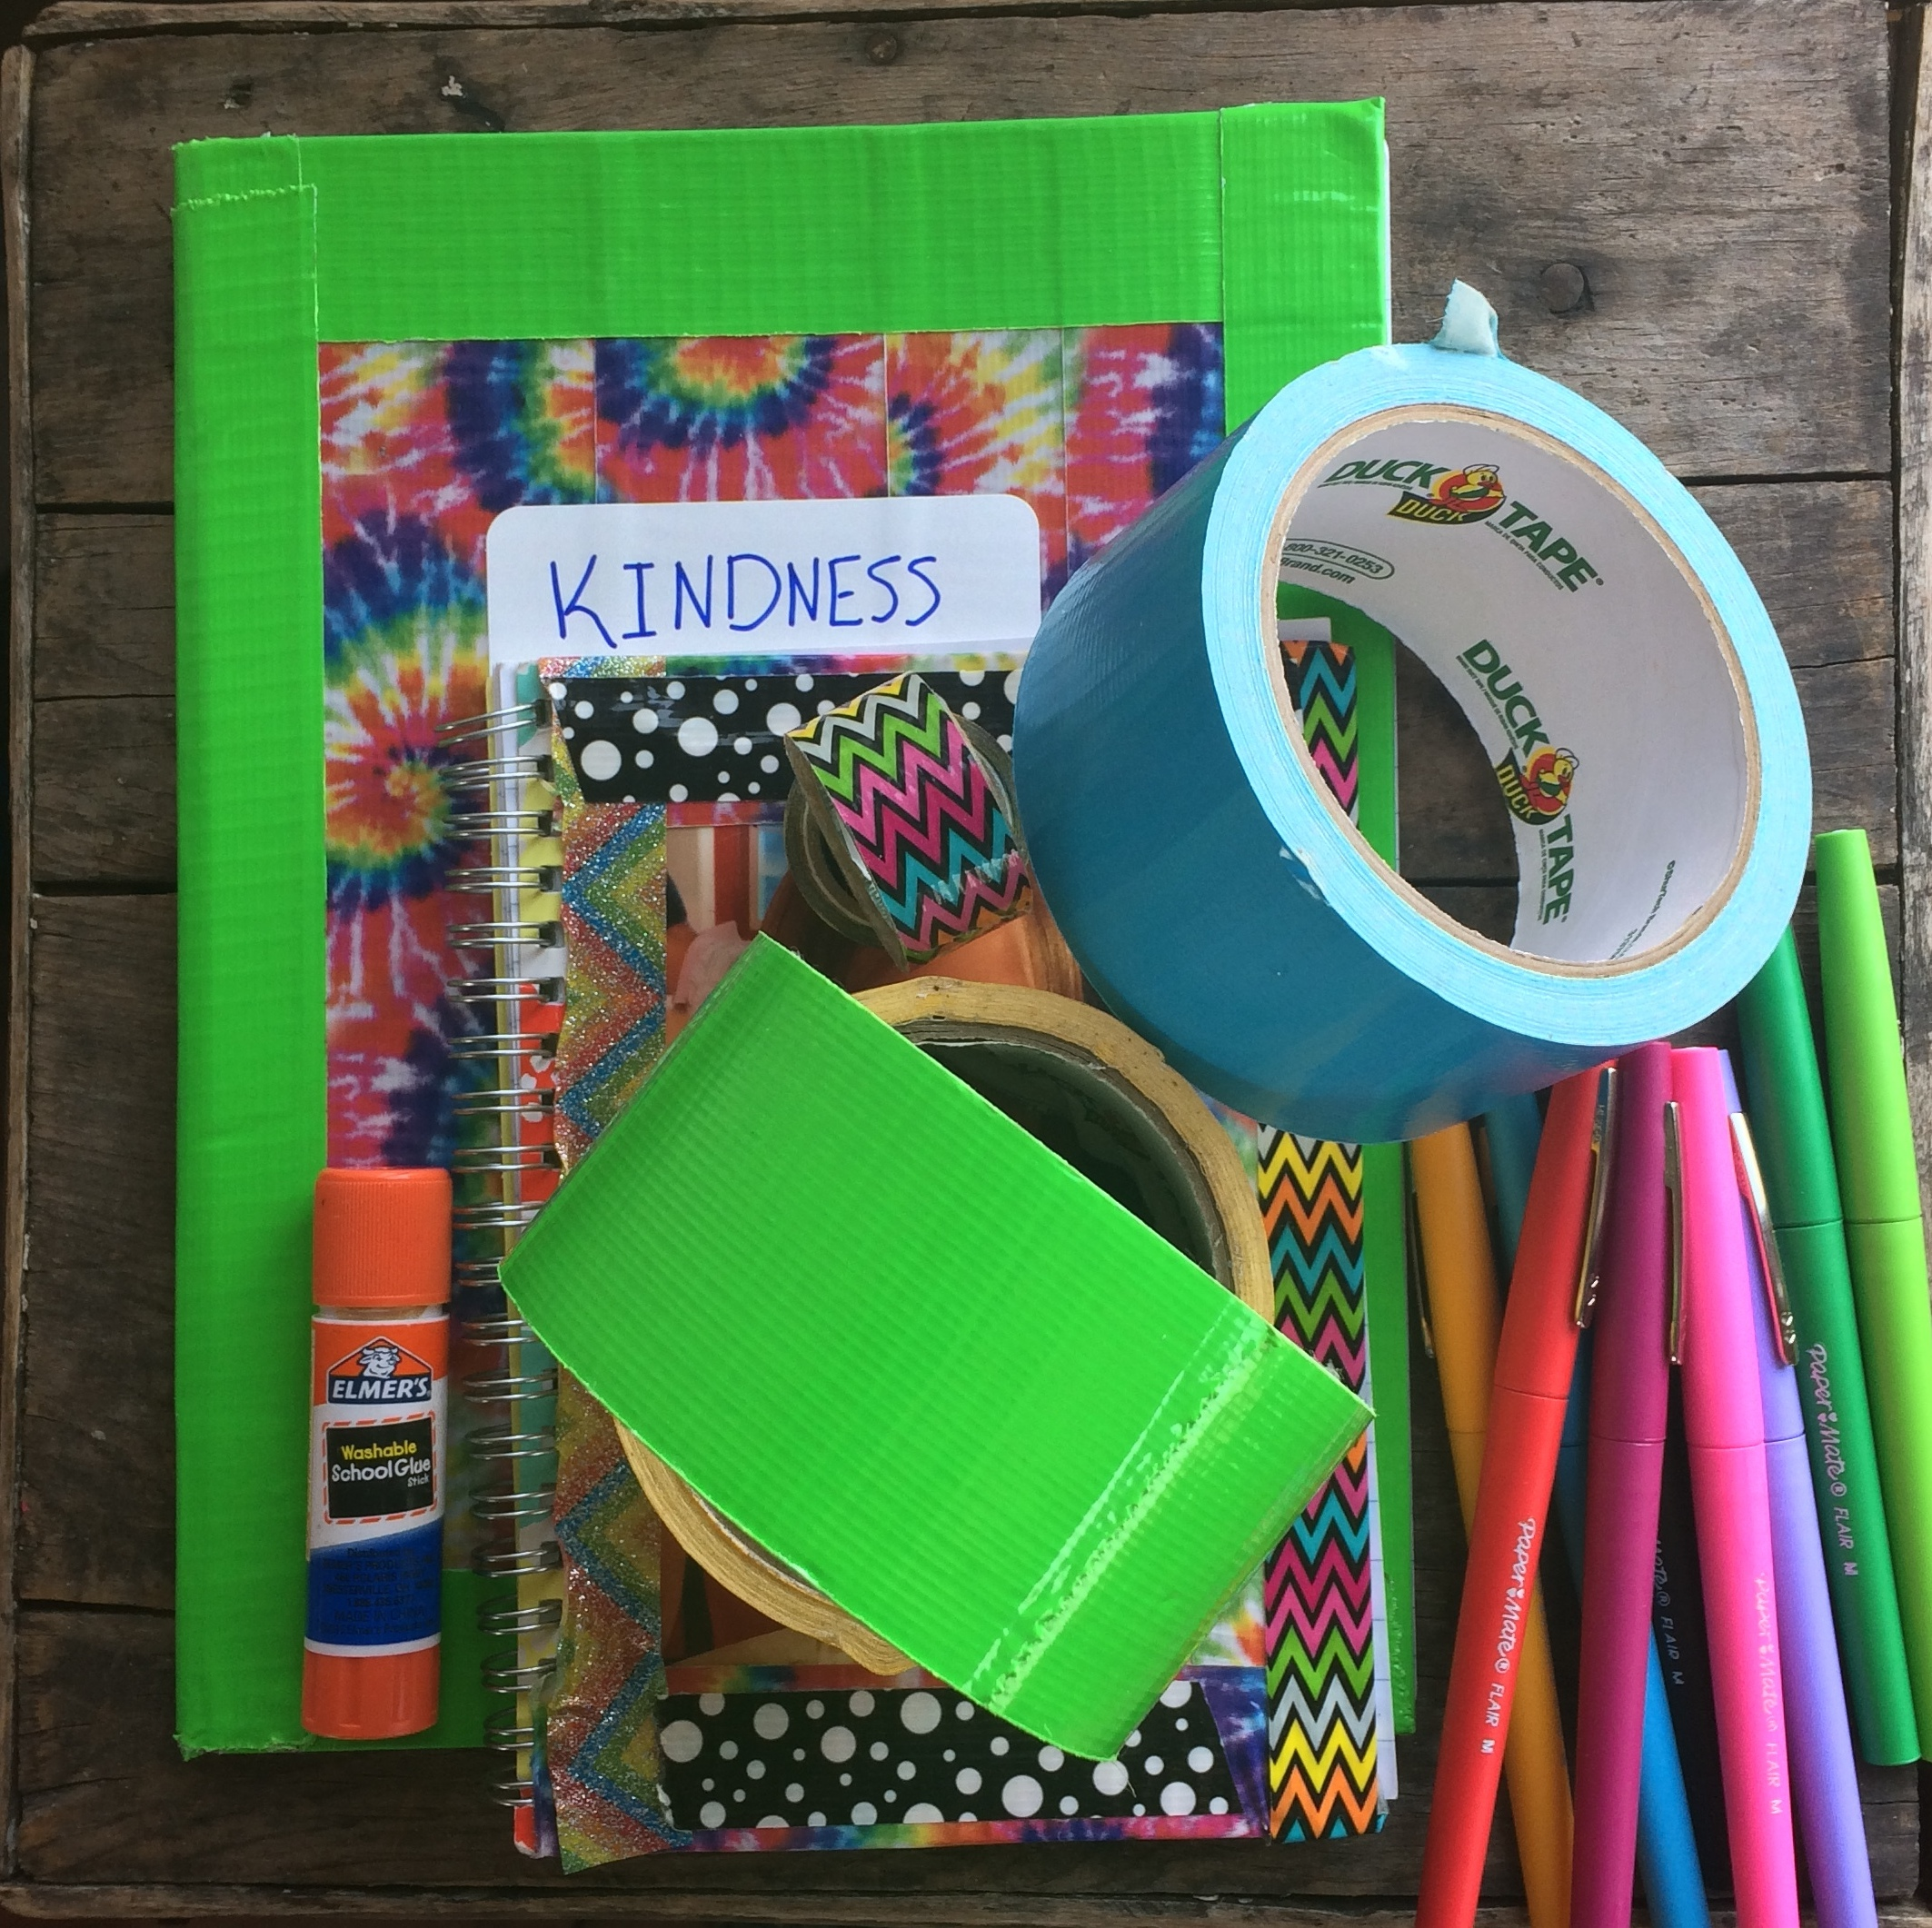 Decorate a composition notebook with duct tape. Scatter compassion-themed prompts and quotes throughout it. Then make time periodically to discuss, draw, and write about those kindness prompts as a family.